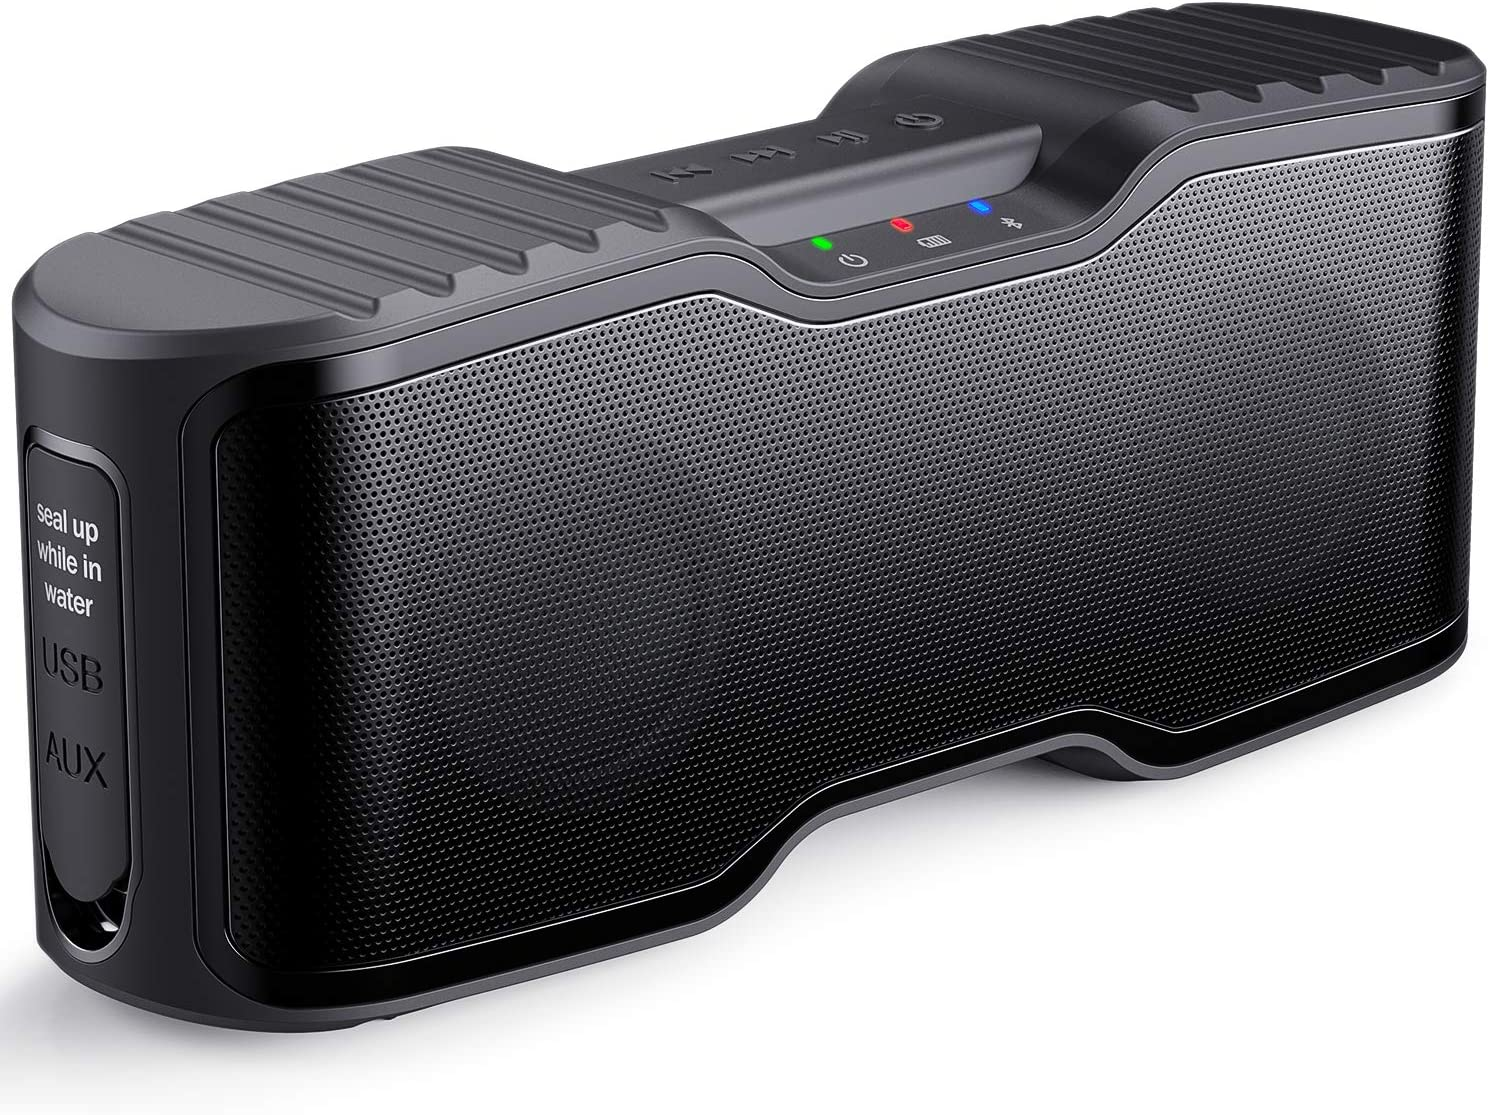 AOMAIS Sport II Portable Wireless Bluetooth Speakers 20W Bass Sound, 15H Playtime, Waterproof IPX7, Stereo Pairing, Outdoors, Travel Home Party Black